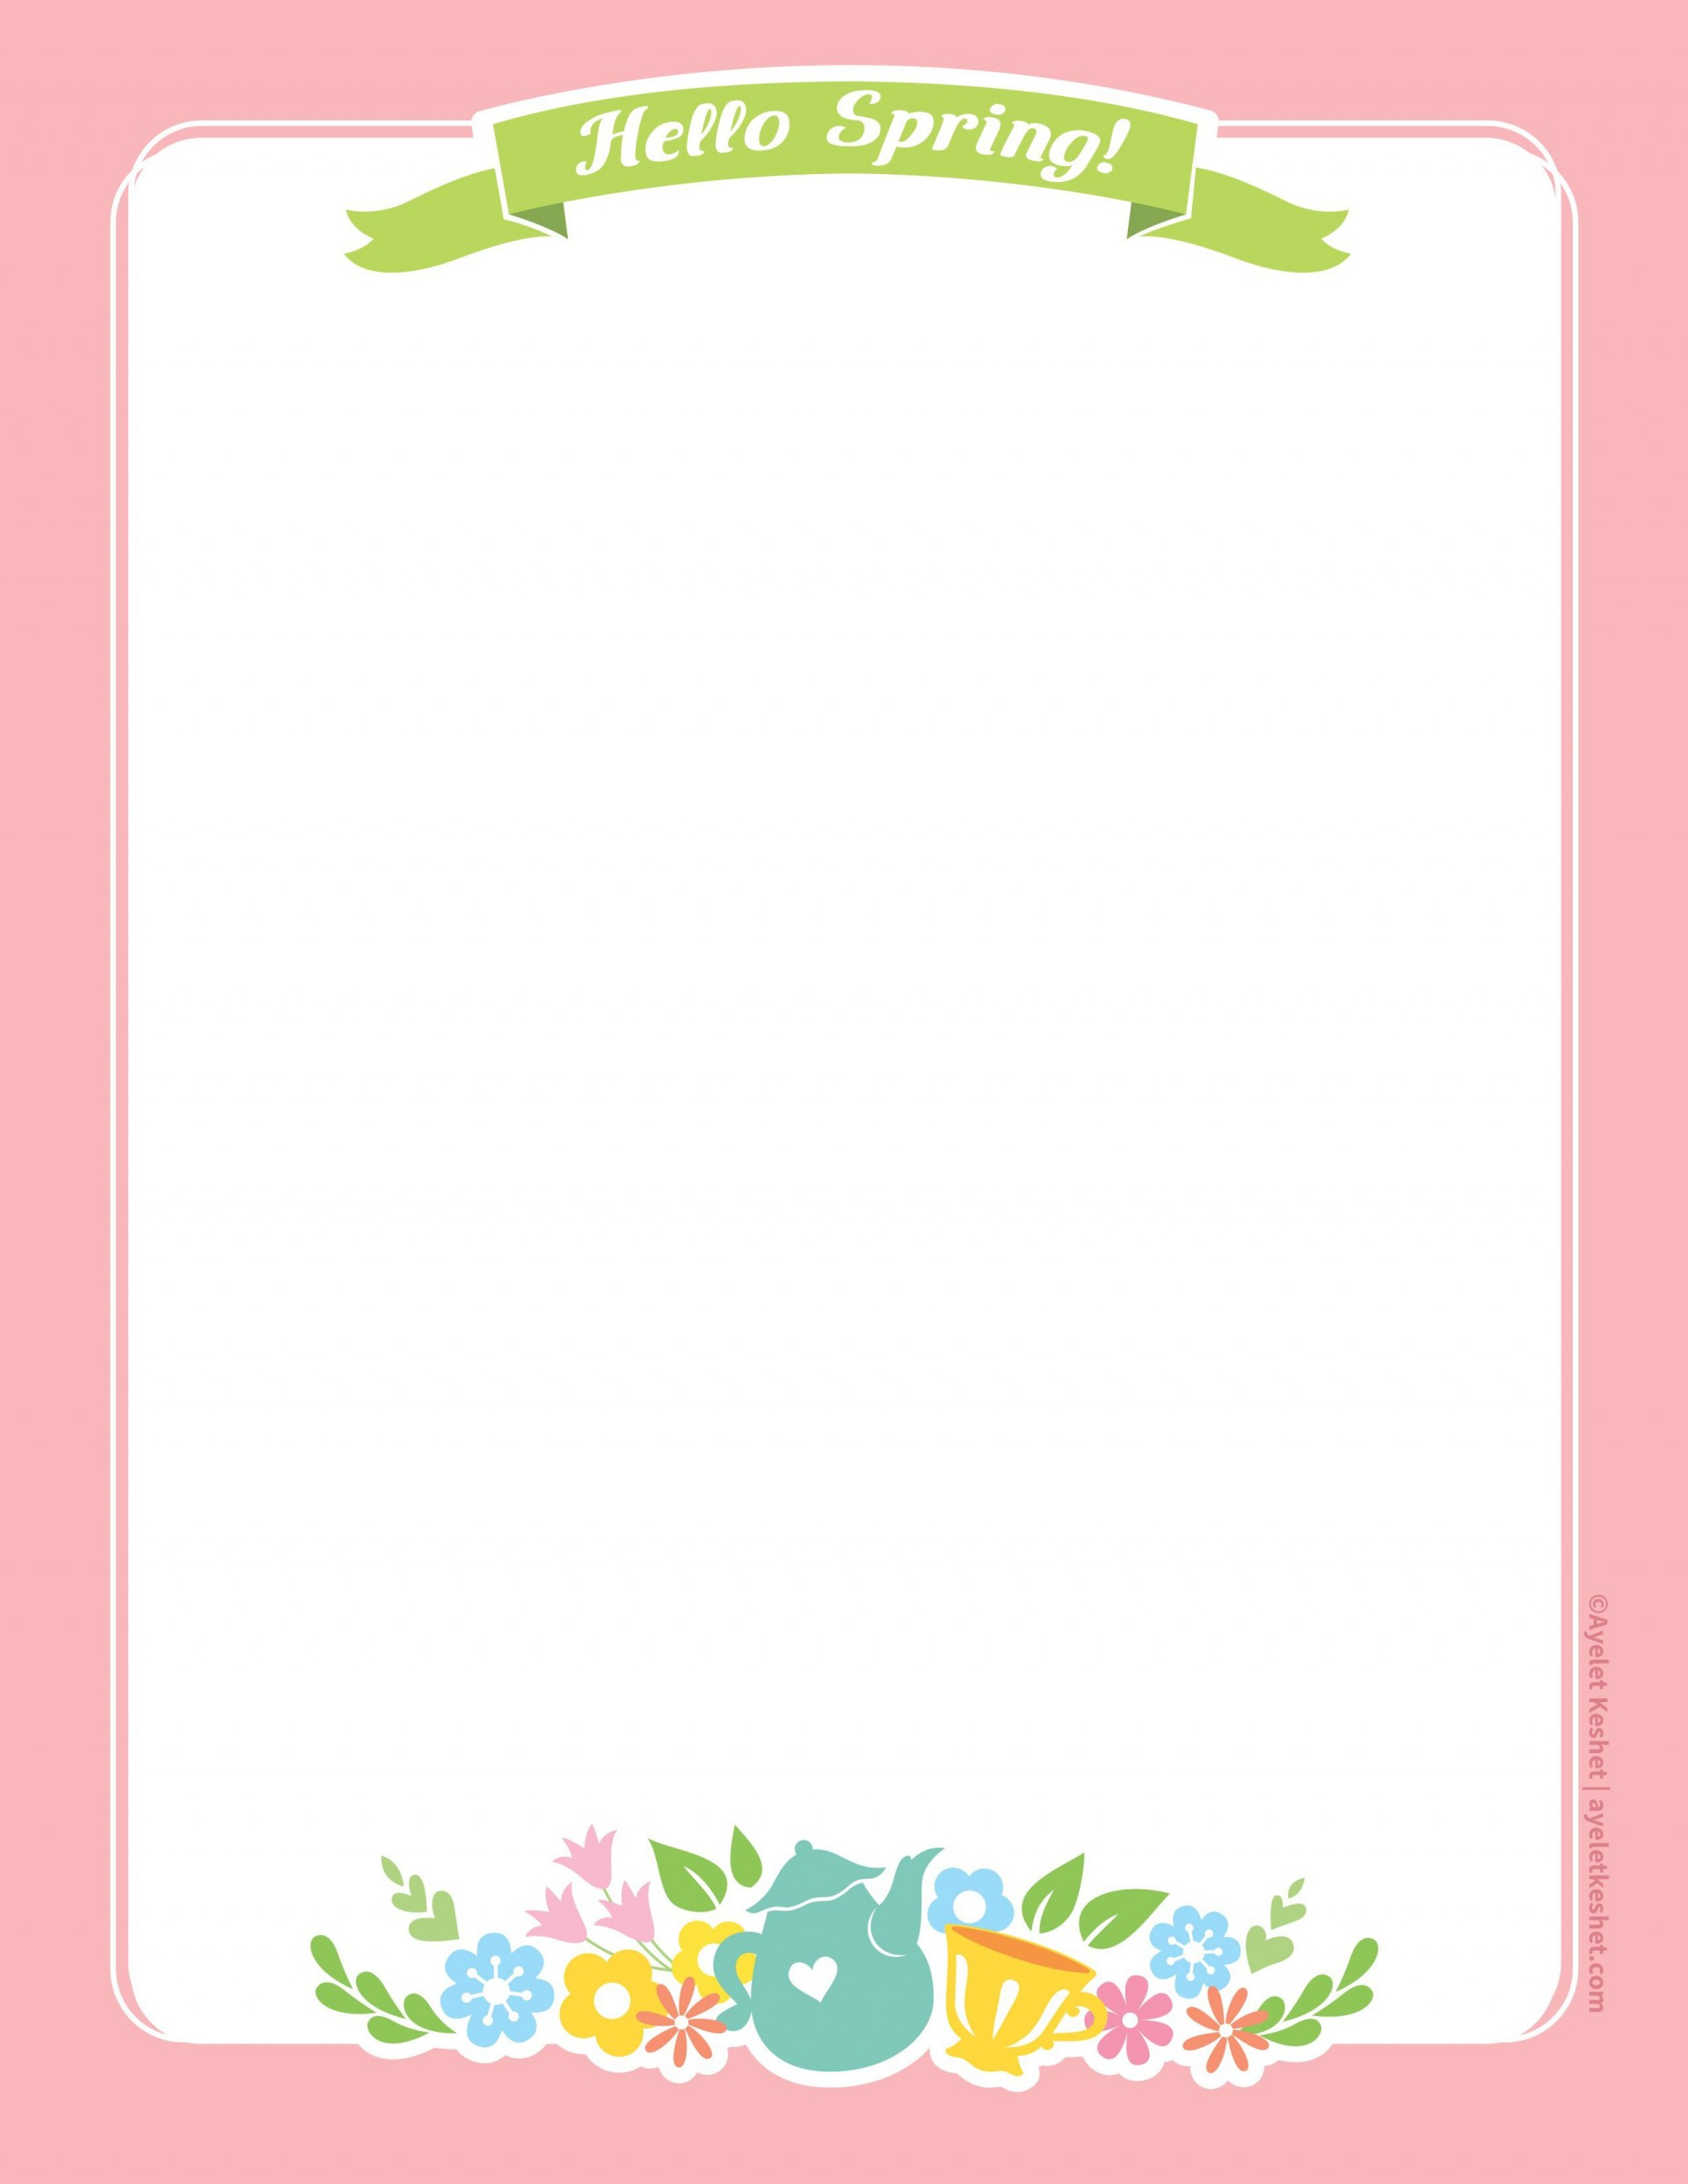 010 Imposing Free Printable Stationery Paper Template Example  Templates1920